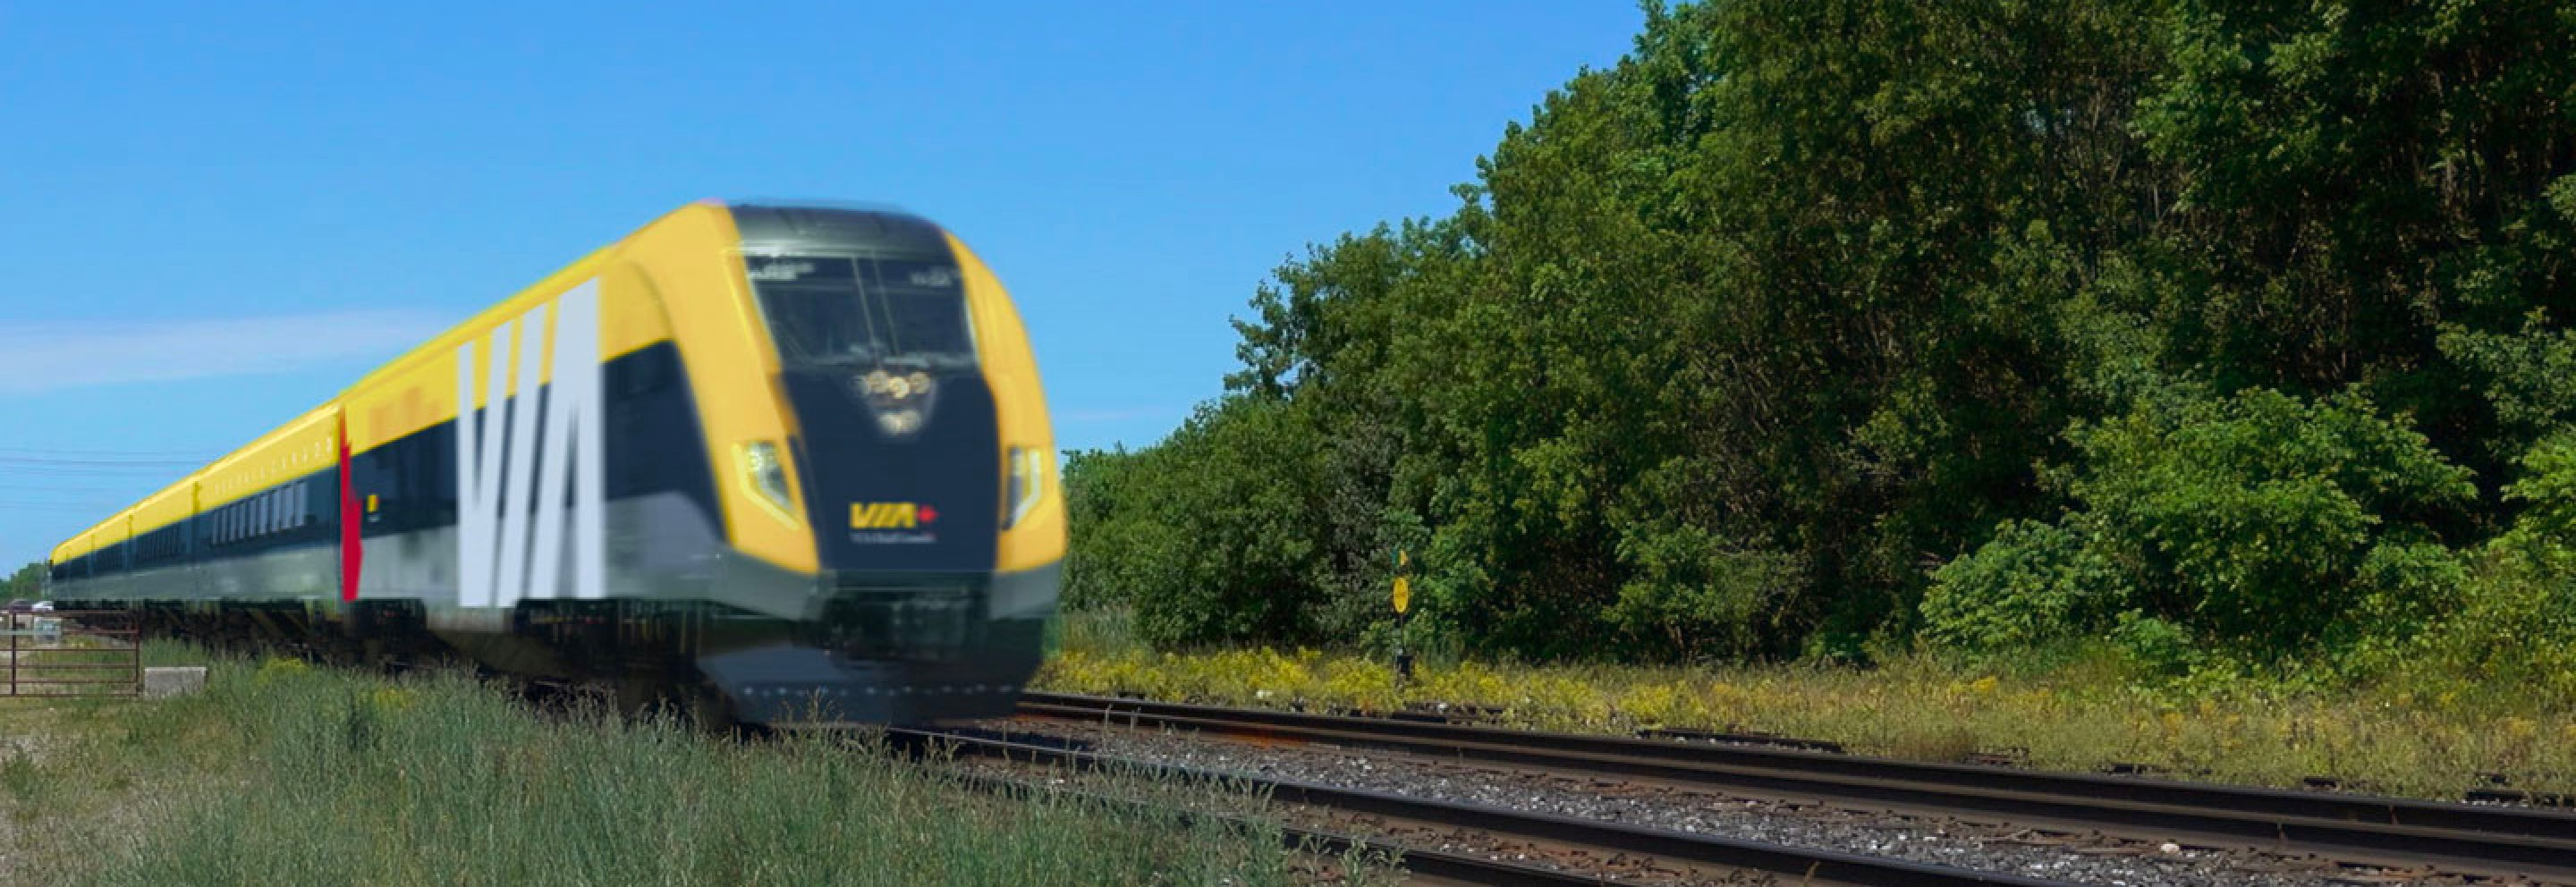 Fleet Replacement Program | VIA Rail